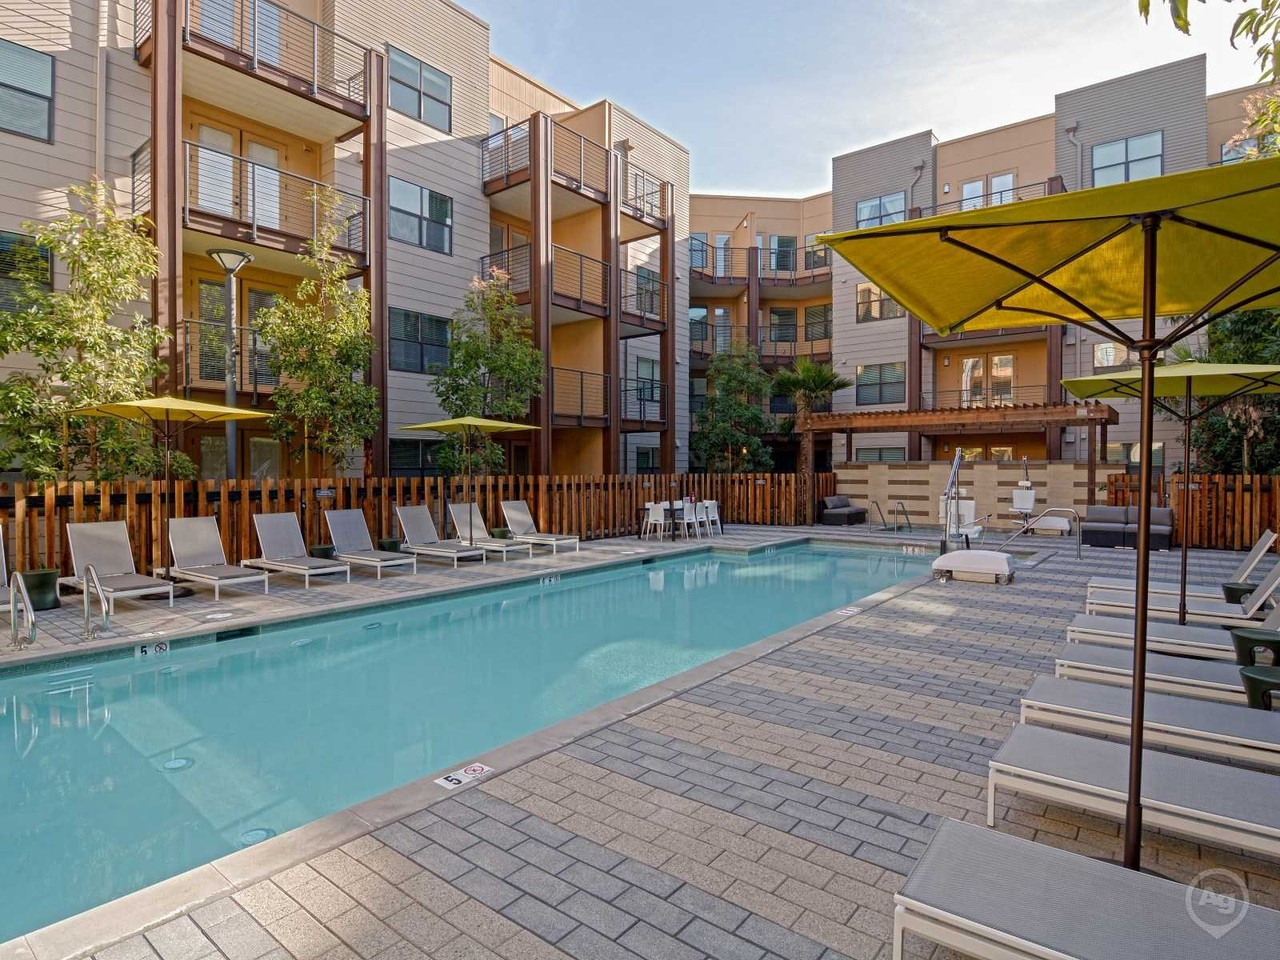 6ten East · Apartments For Rent. Sunnyvale Apartments